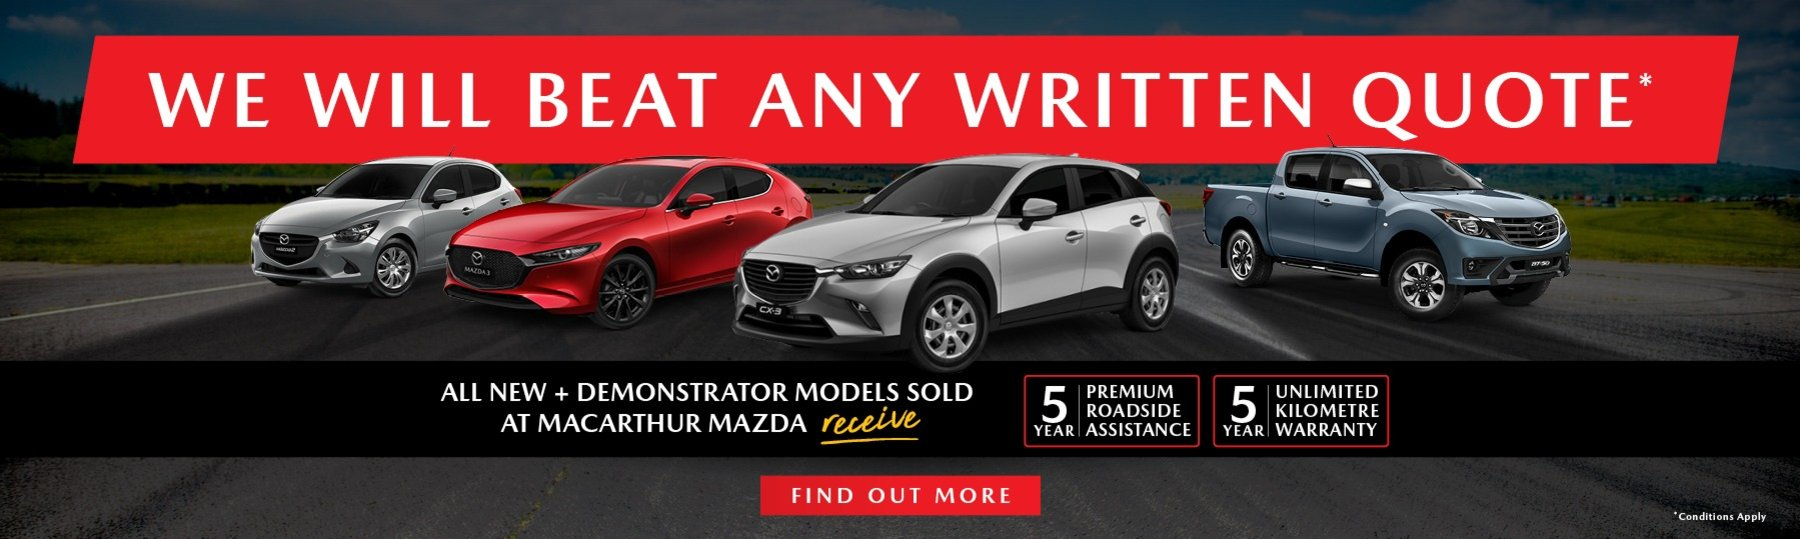 Macarthur Mazda | We'll beat all writen quotes